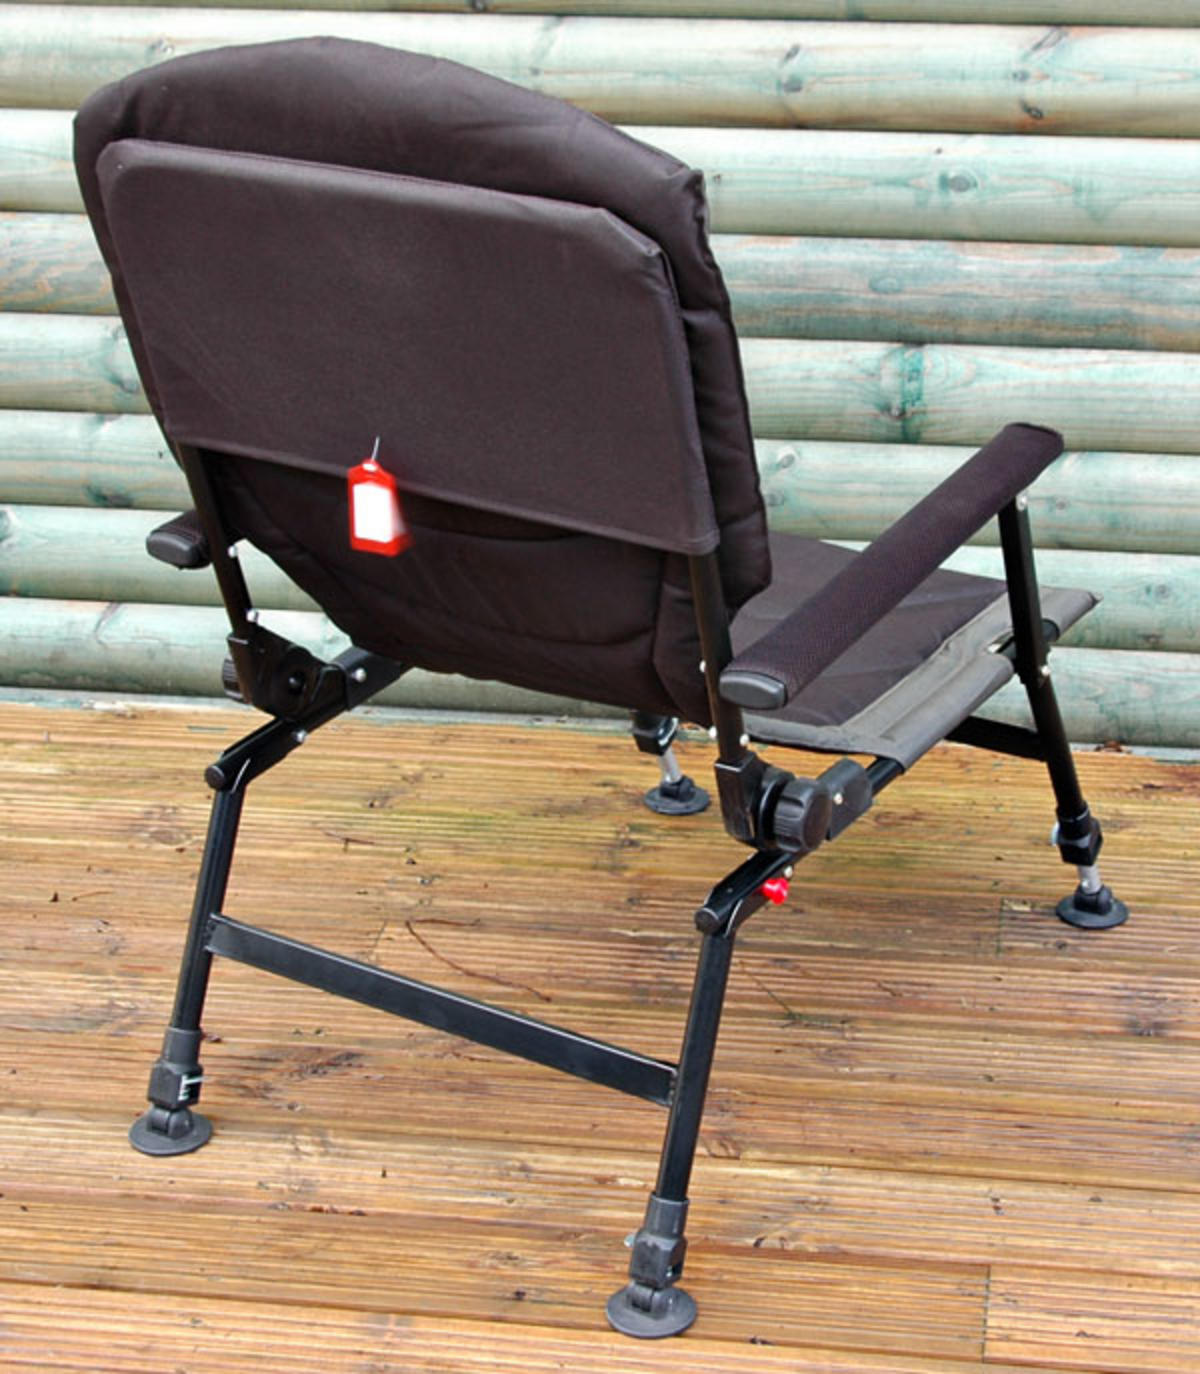 fishing chair with arms kids football bison delux carp adjustable legs back recliner